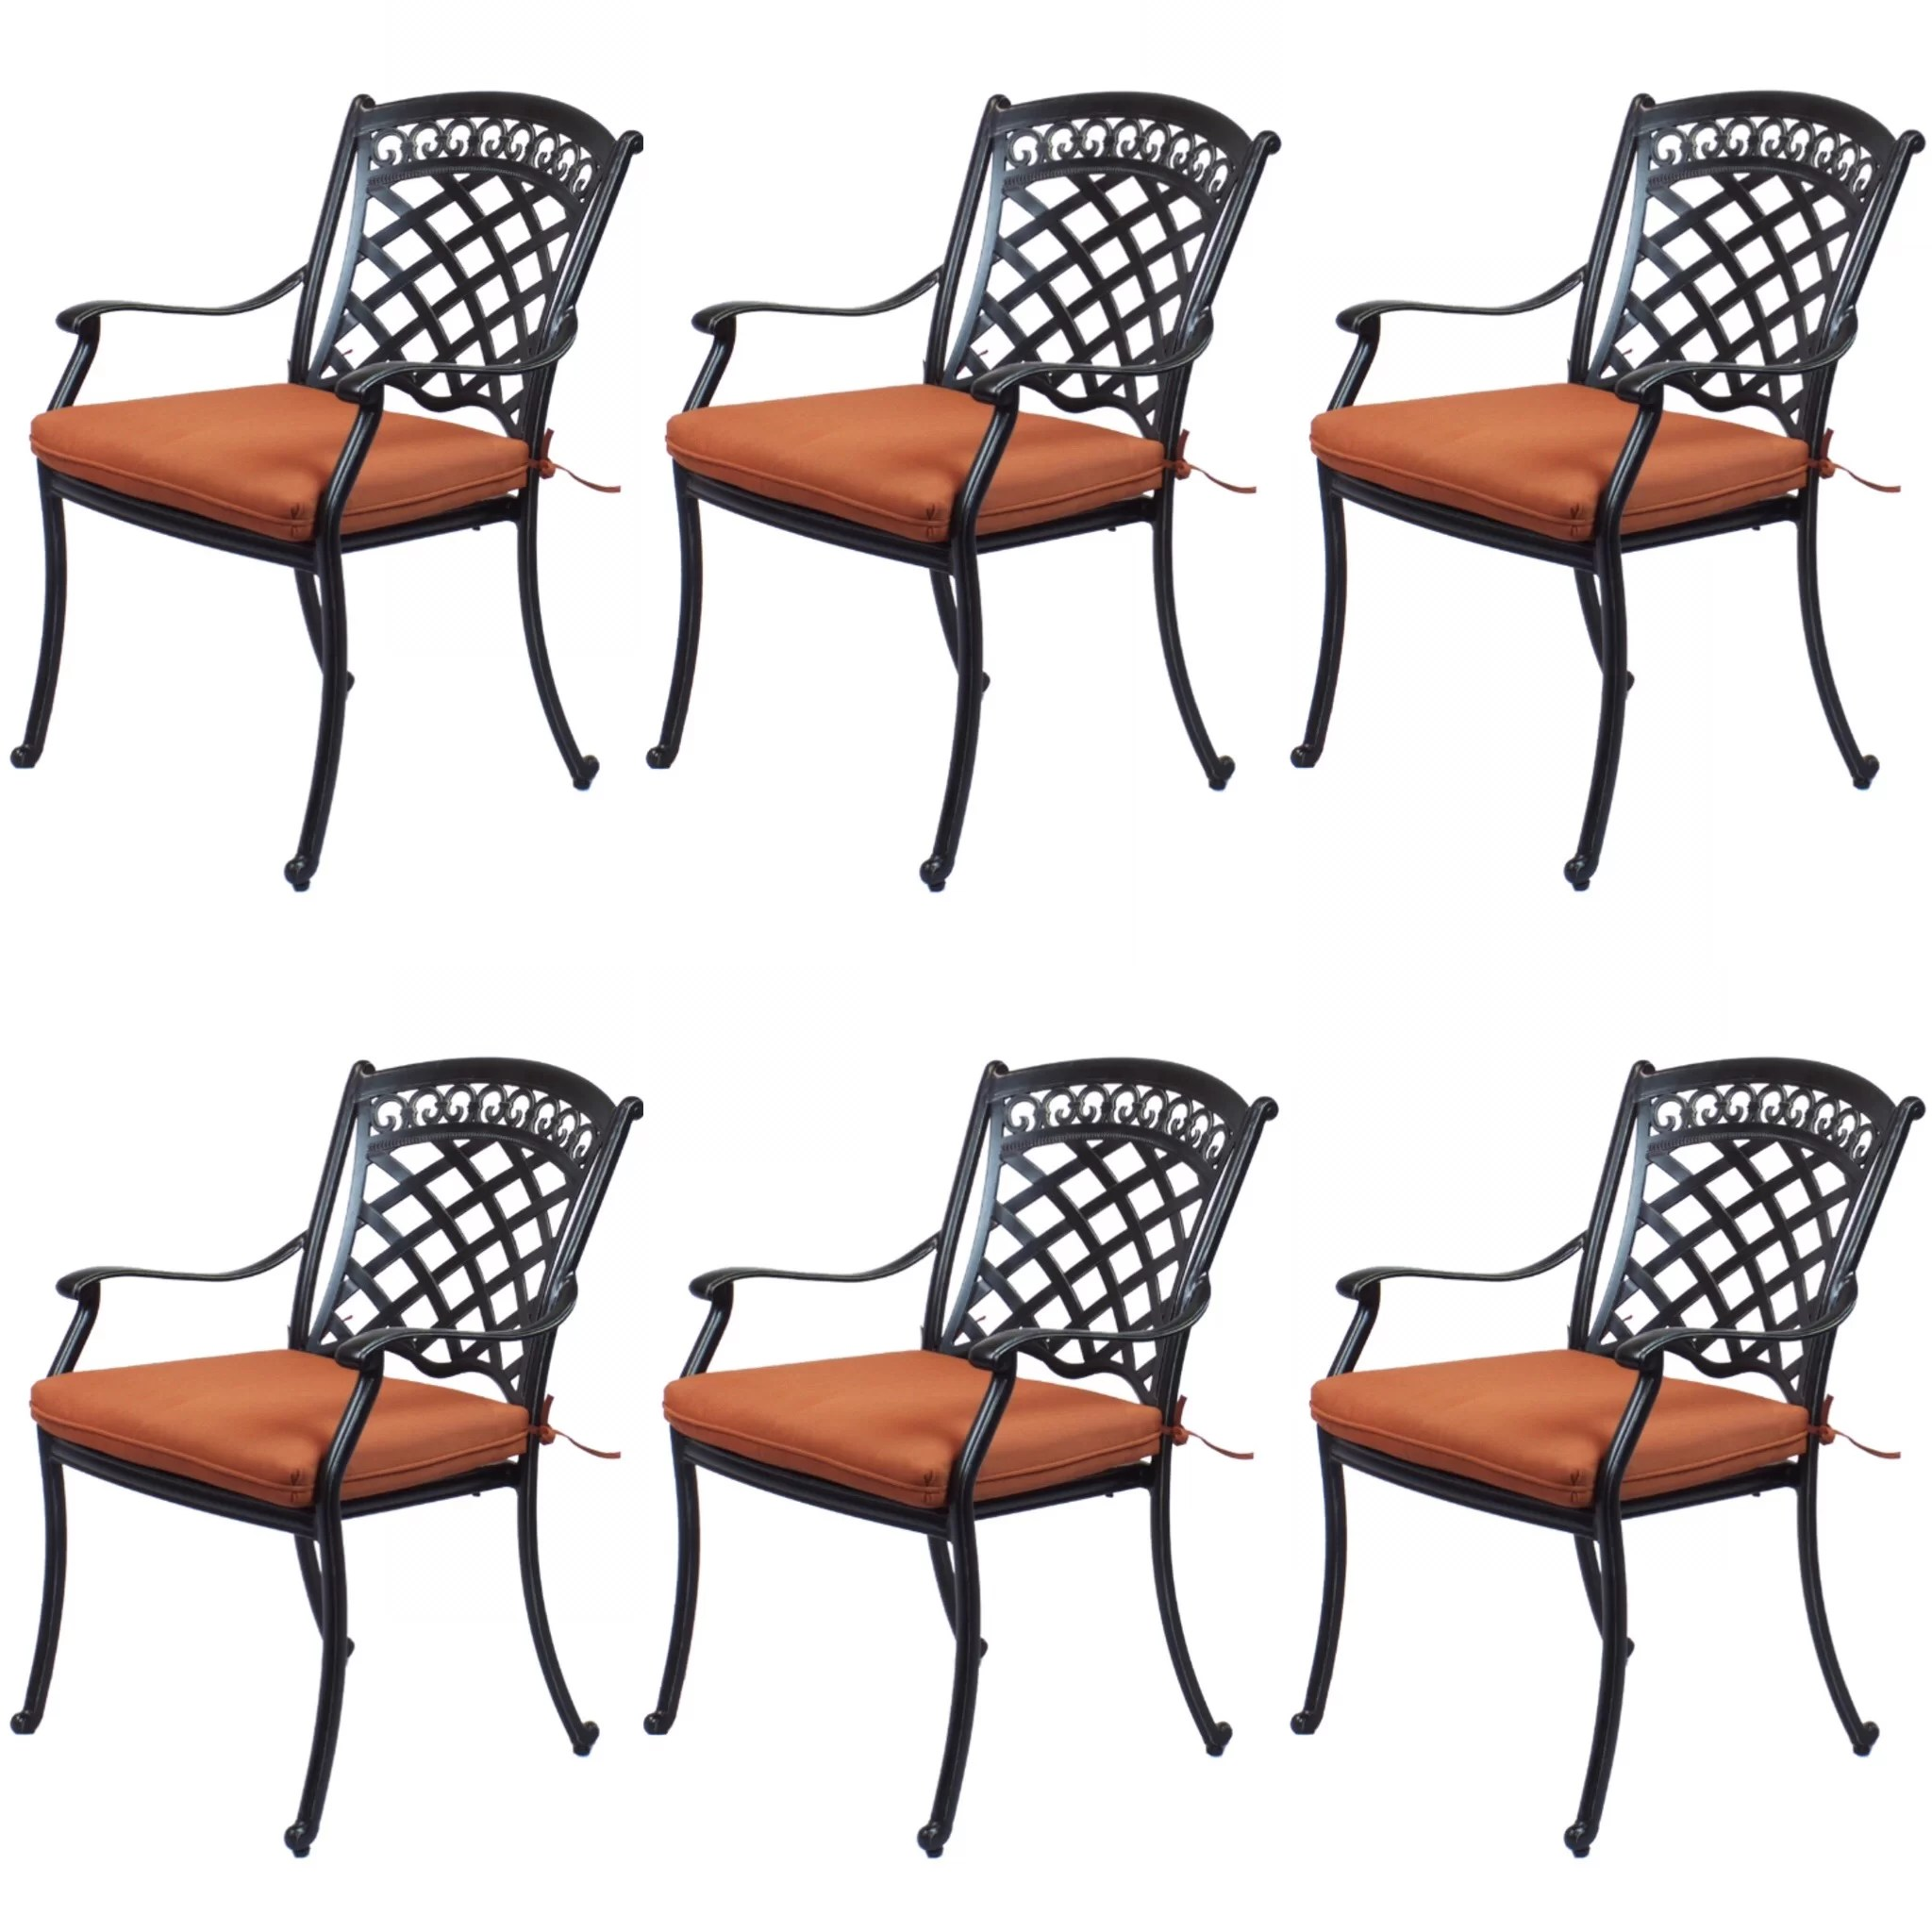 st tropez cast aluminum patio dining chairs with cushions